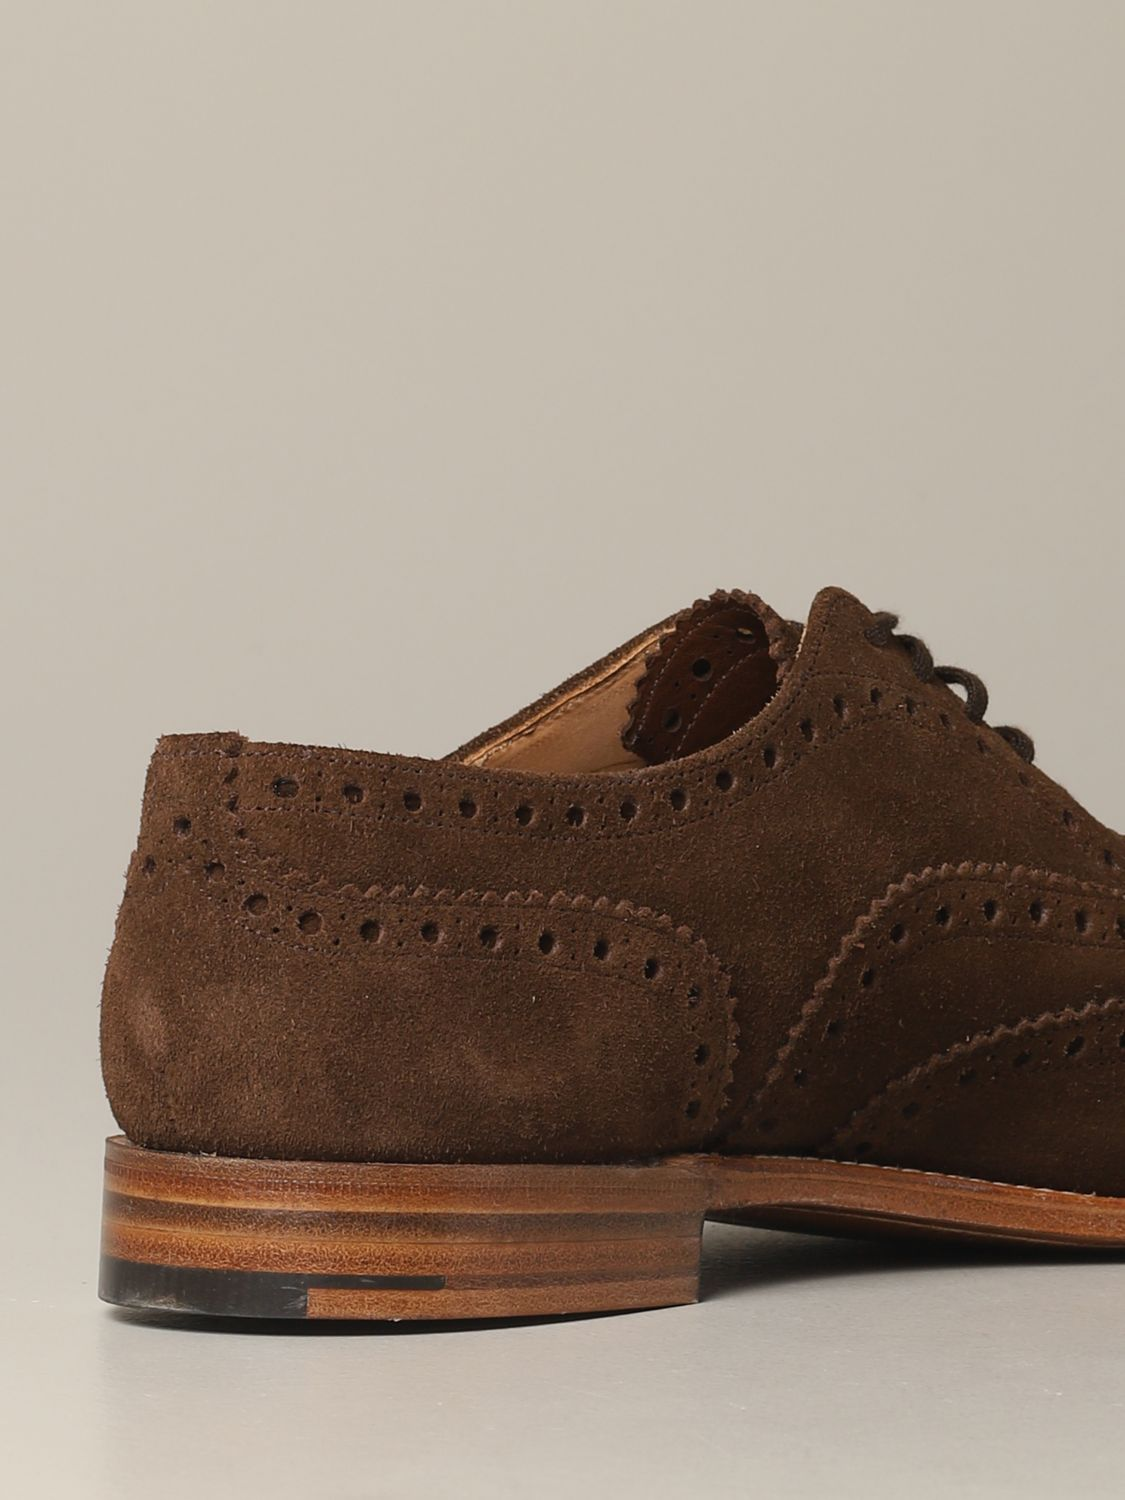 Brogue shoes Church's: Francesina Burwood Church's in suede with brogue motif brown 5